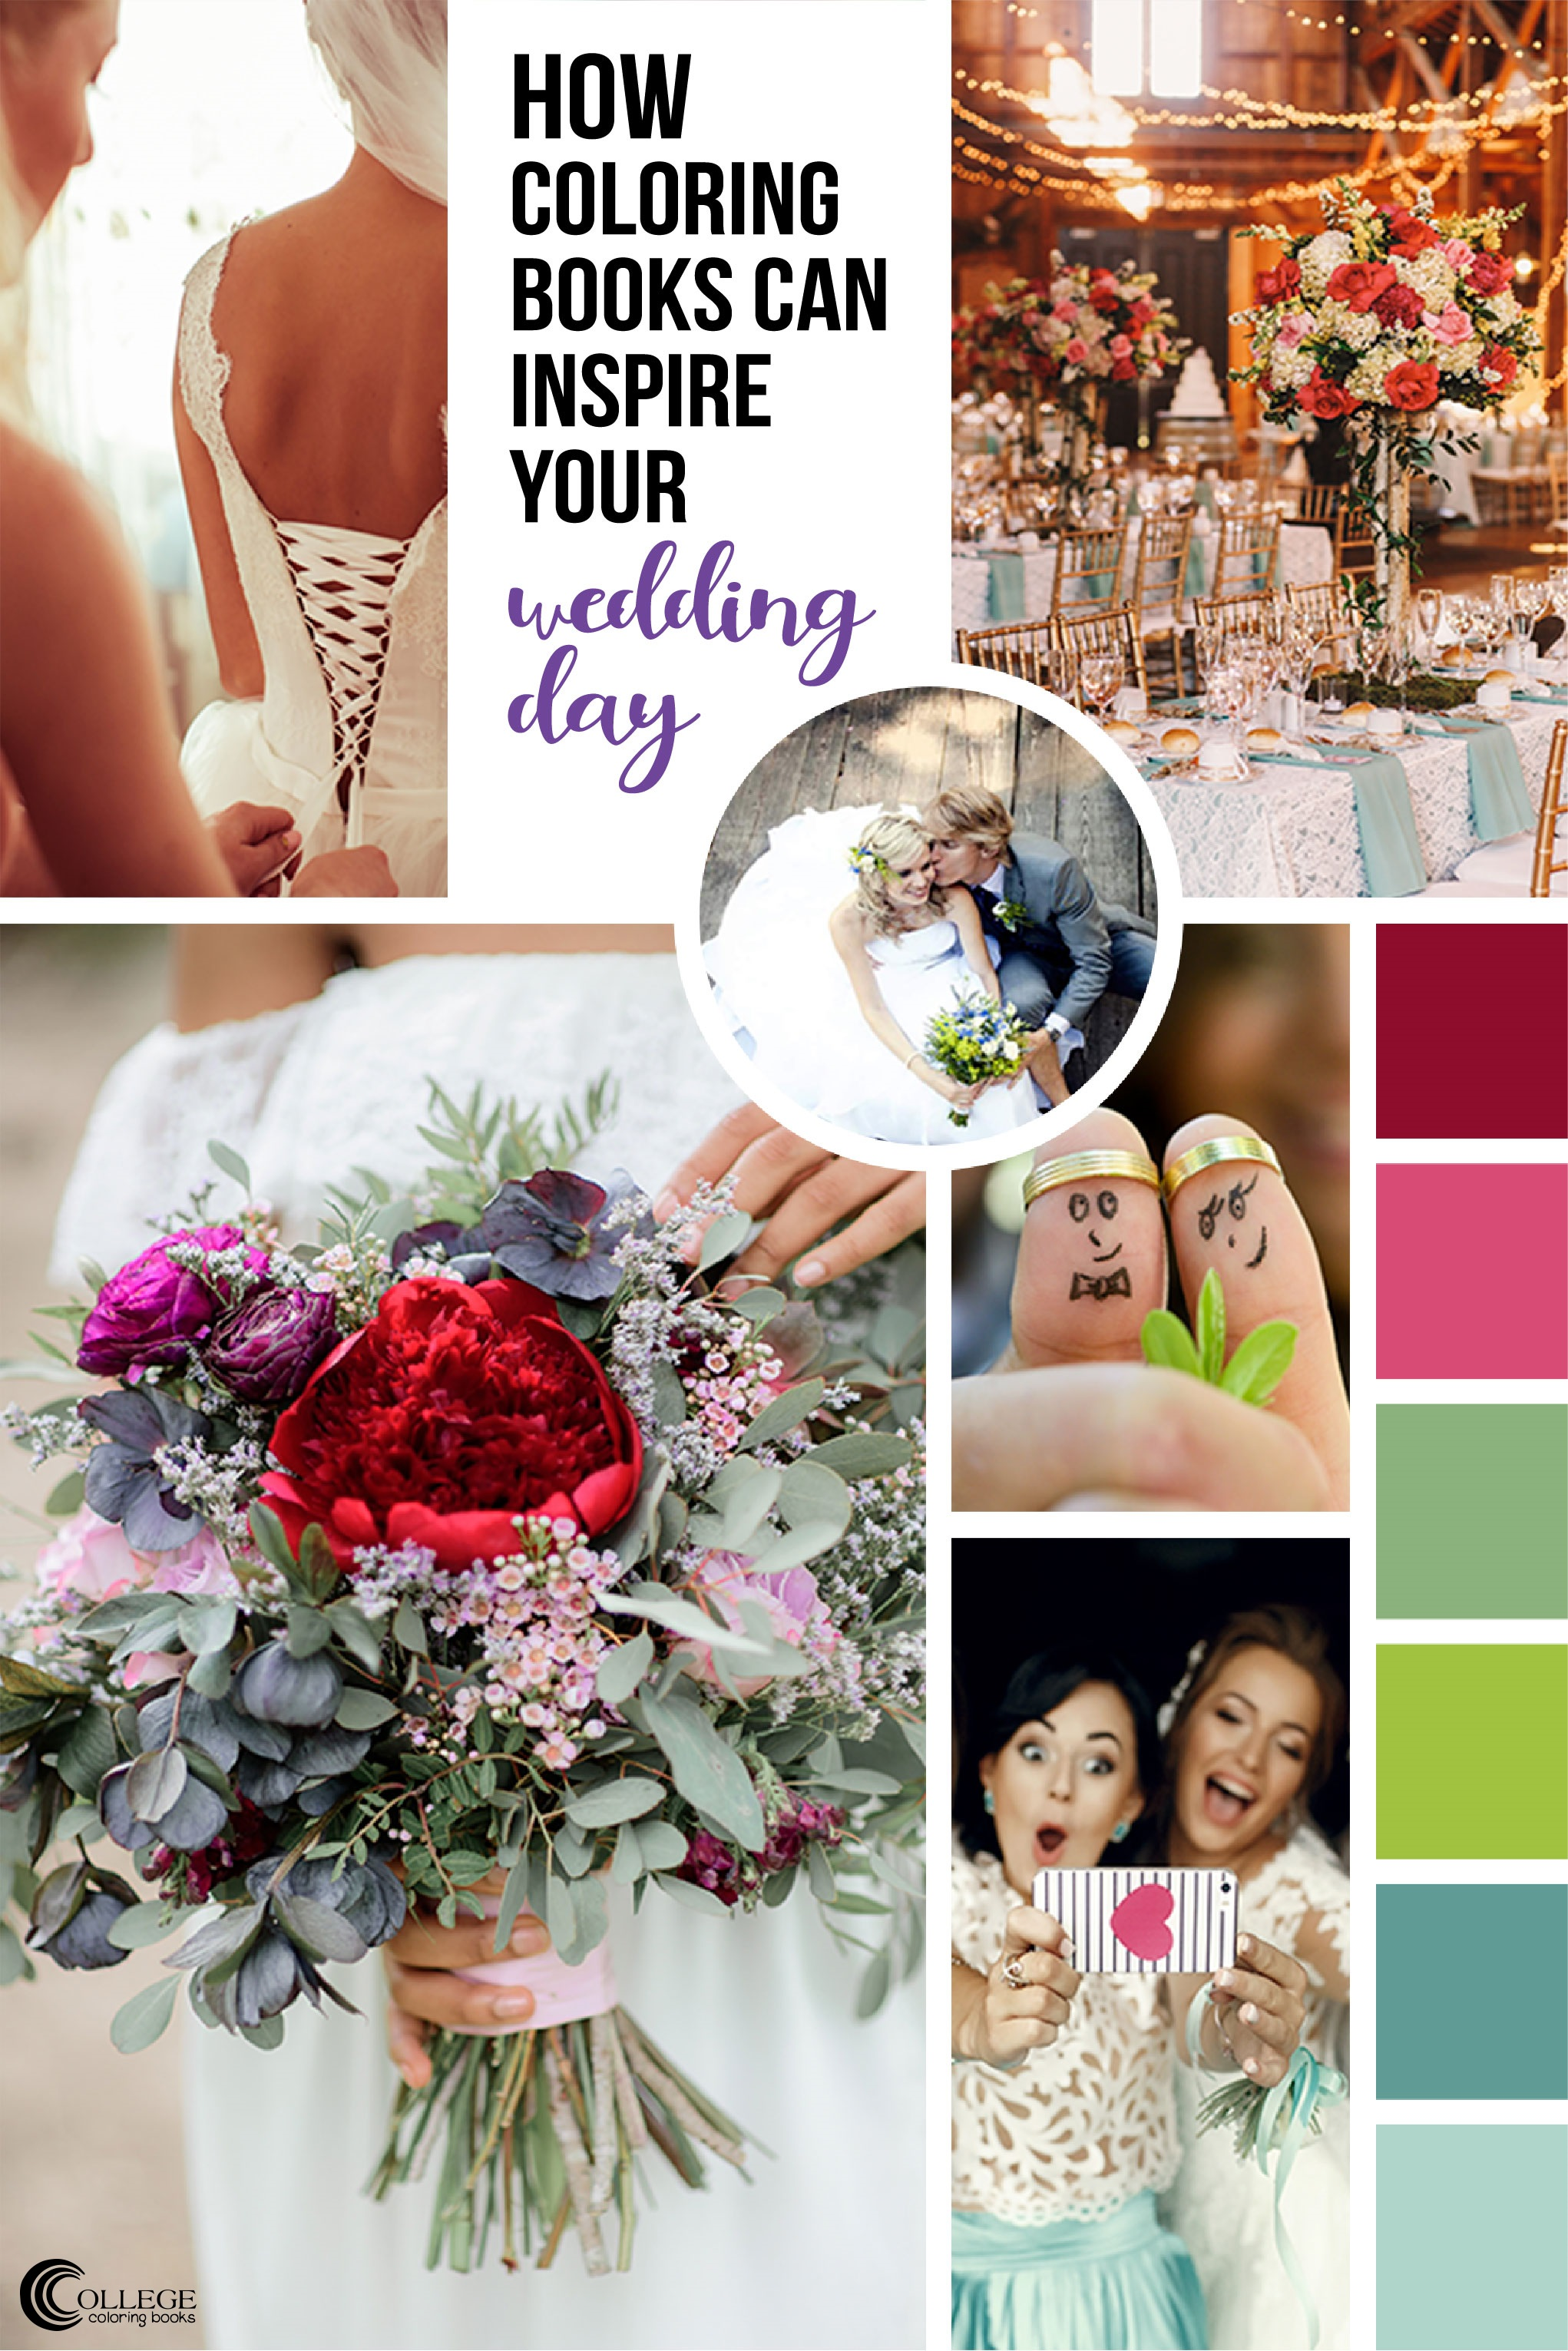 College Coloring Books Weddings and Adult Coloring